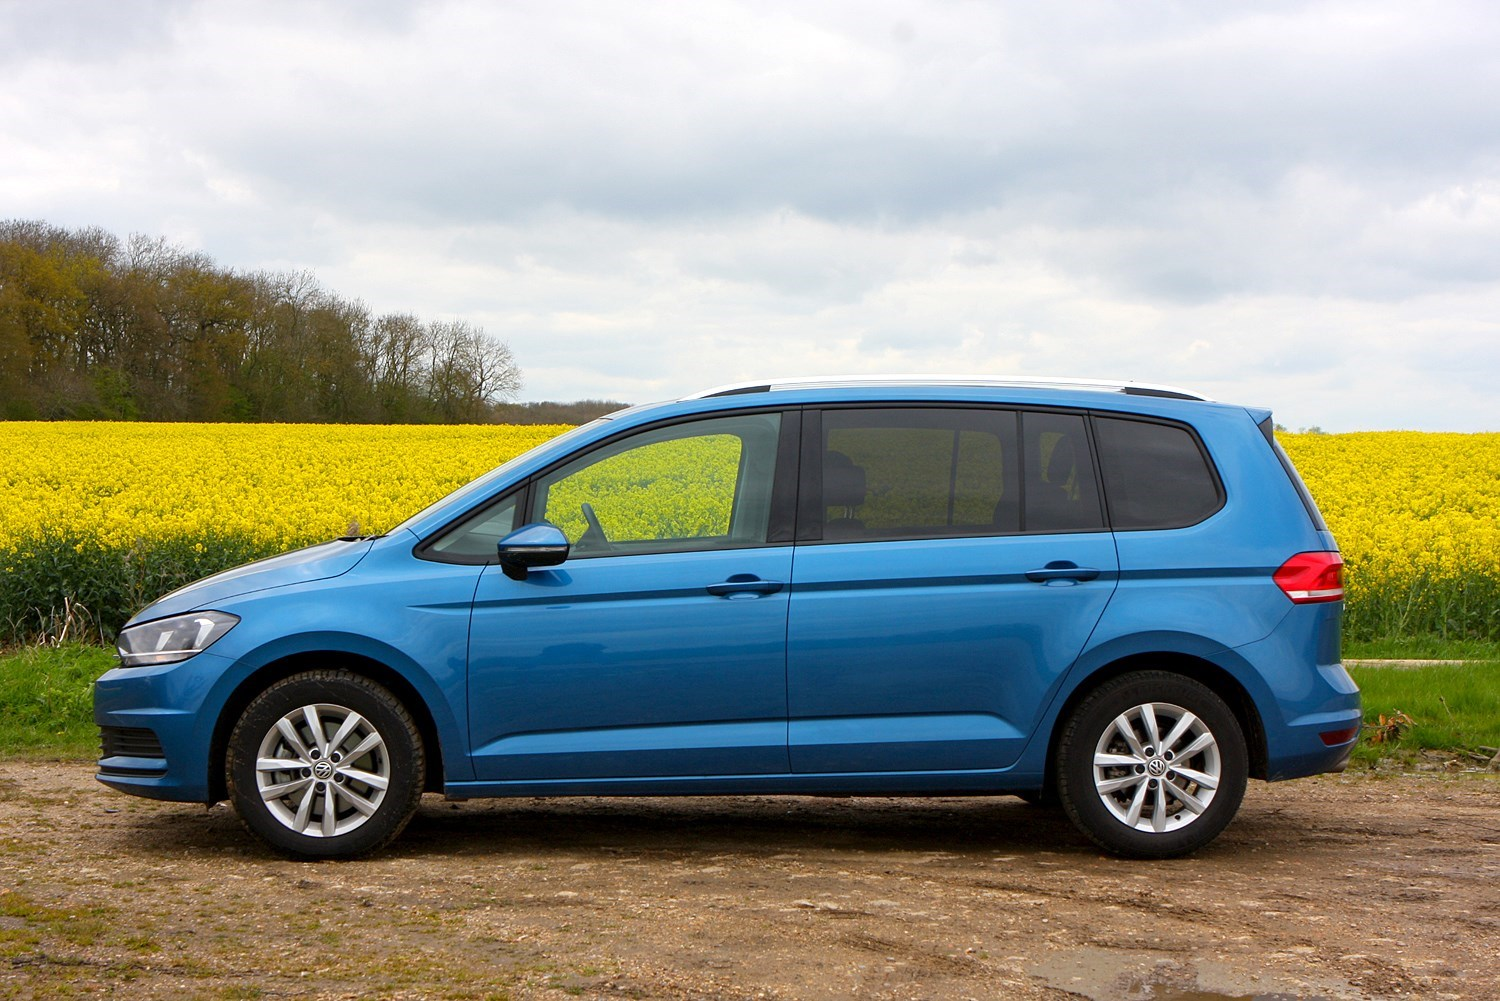 Cars for twins and a toddler - VW Touran